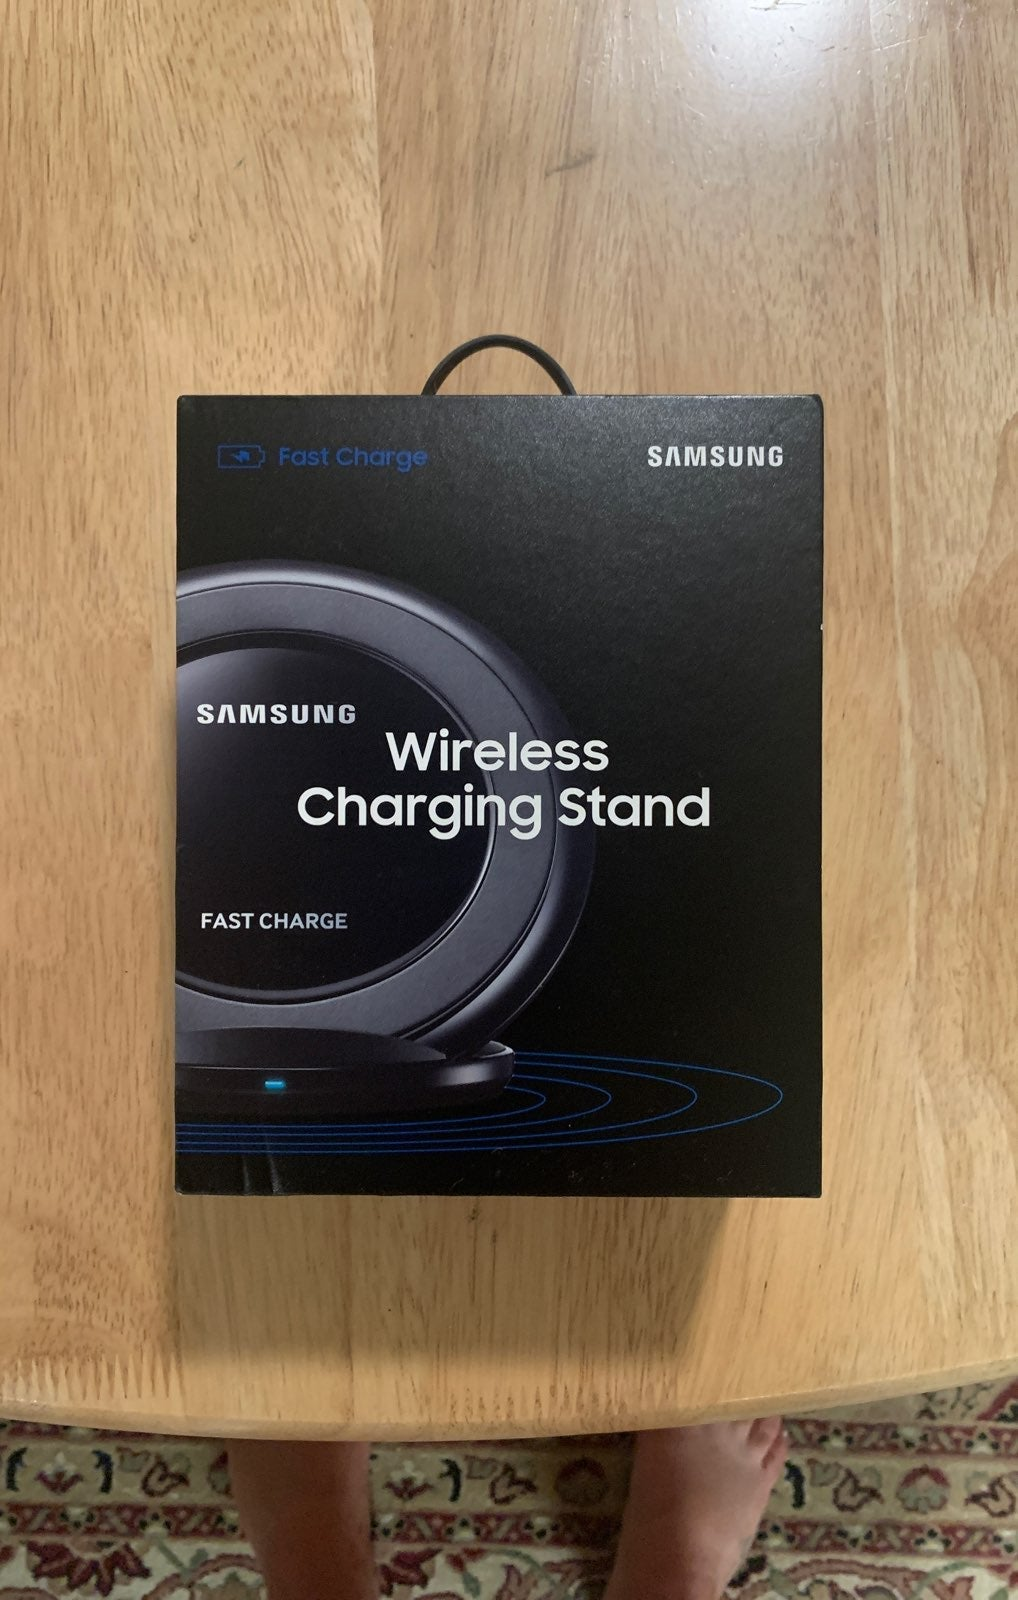 Samsung Wireless Charging Stand